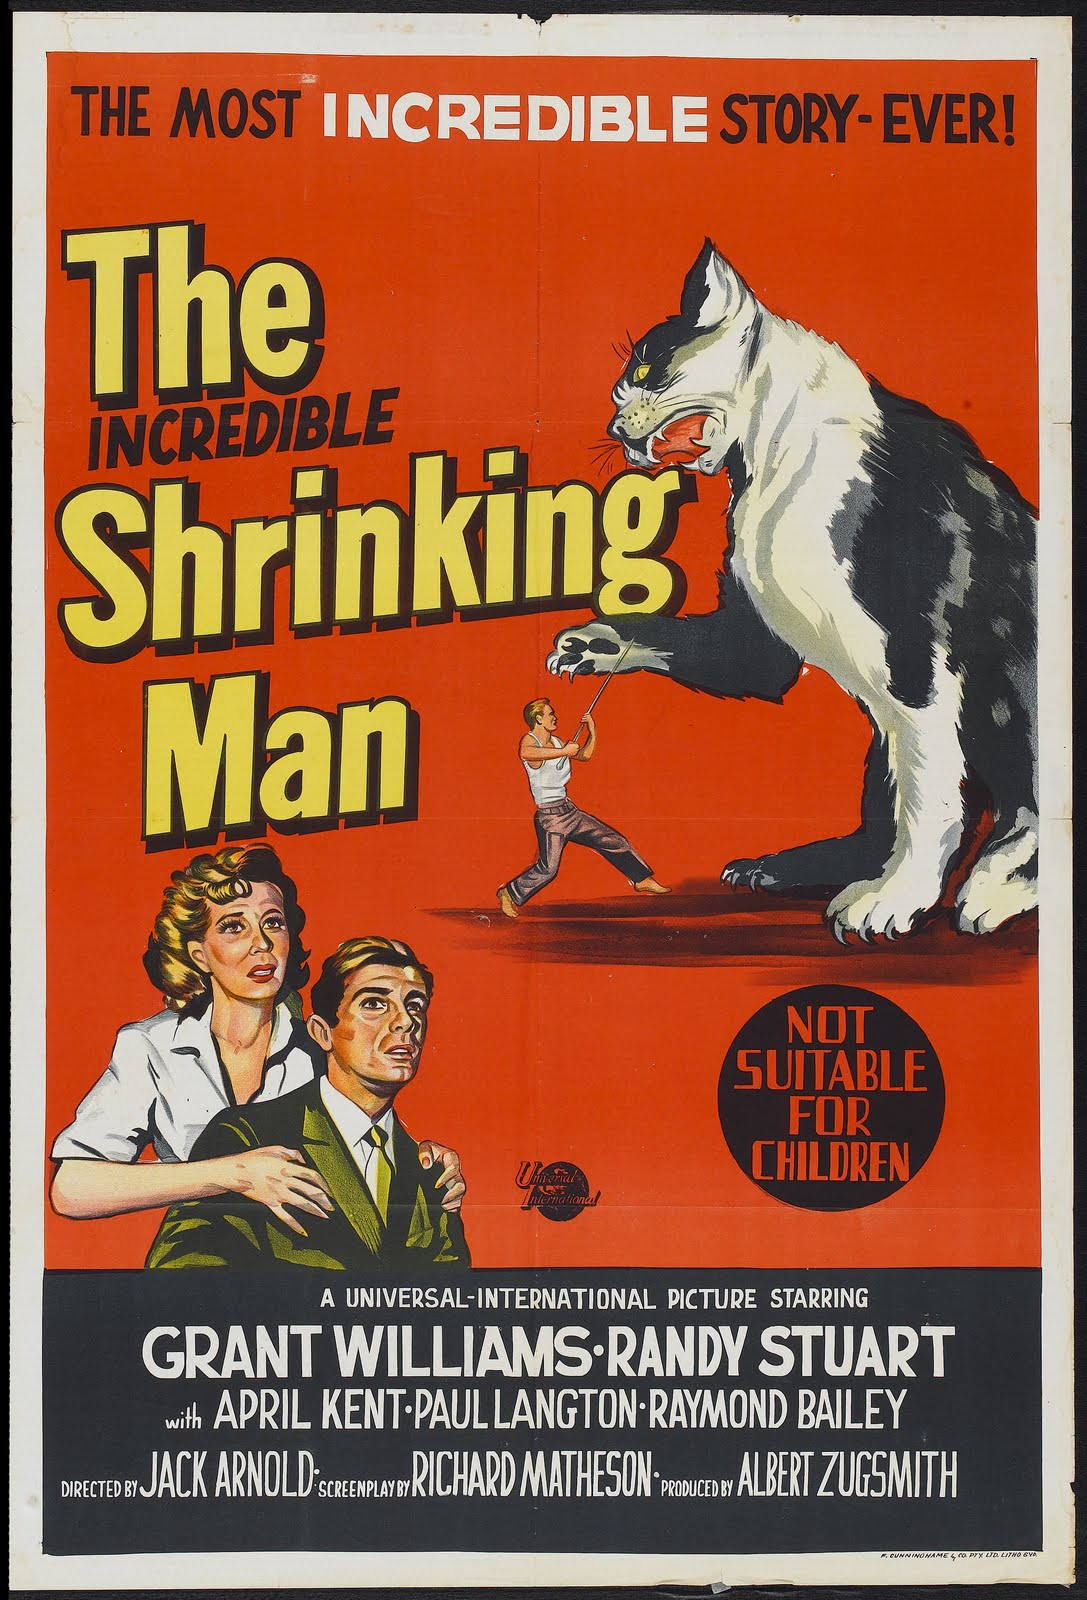 http://cclsmultimedia.files.wordpress.com/2013/03/incredible_shrinking_man_poster_02.jpg Incredible Shrinking Man Poster